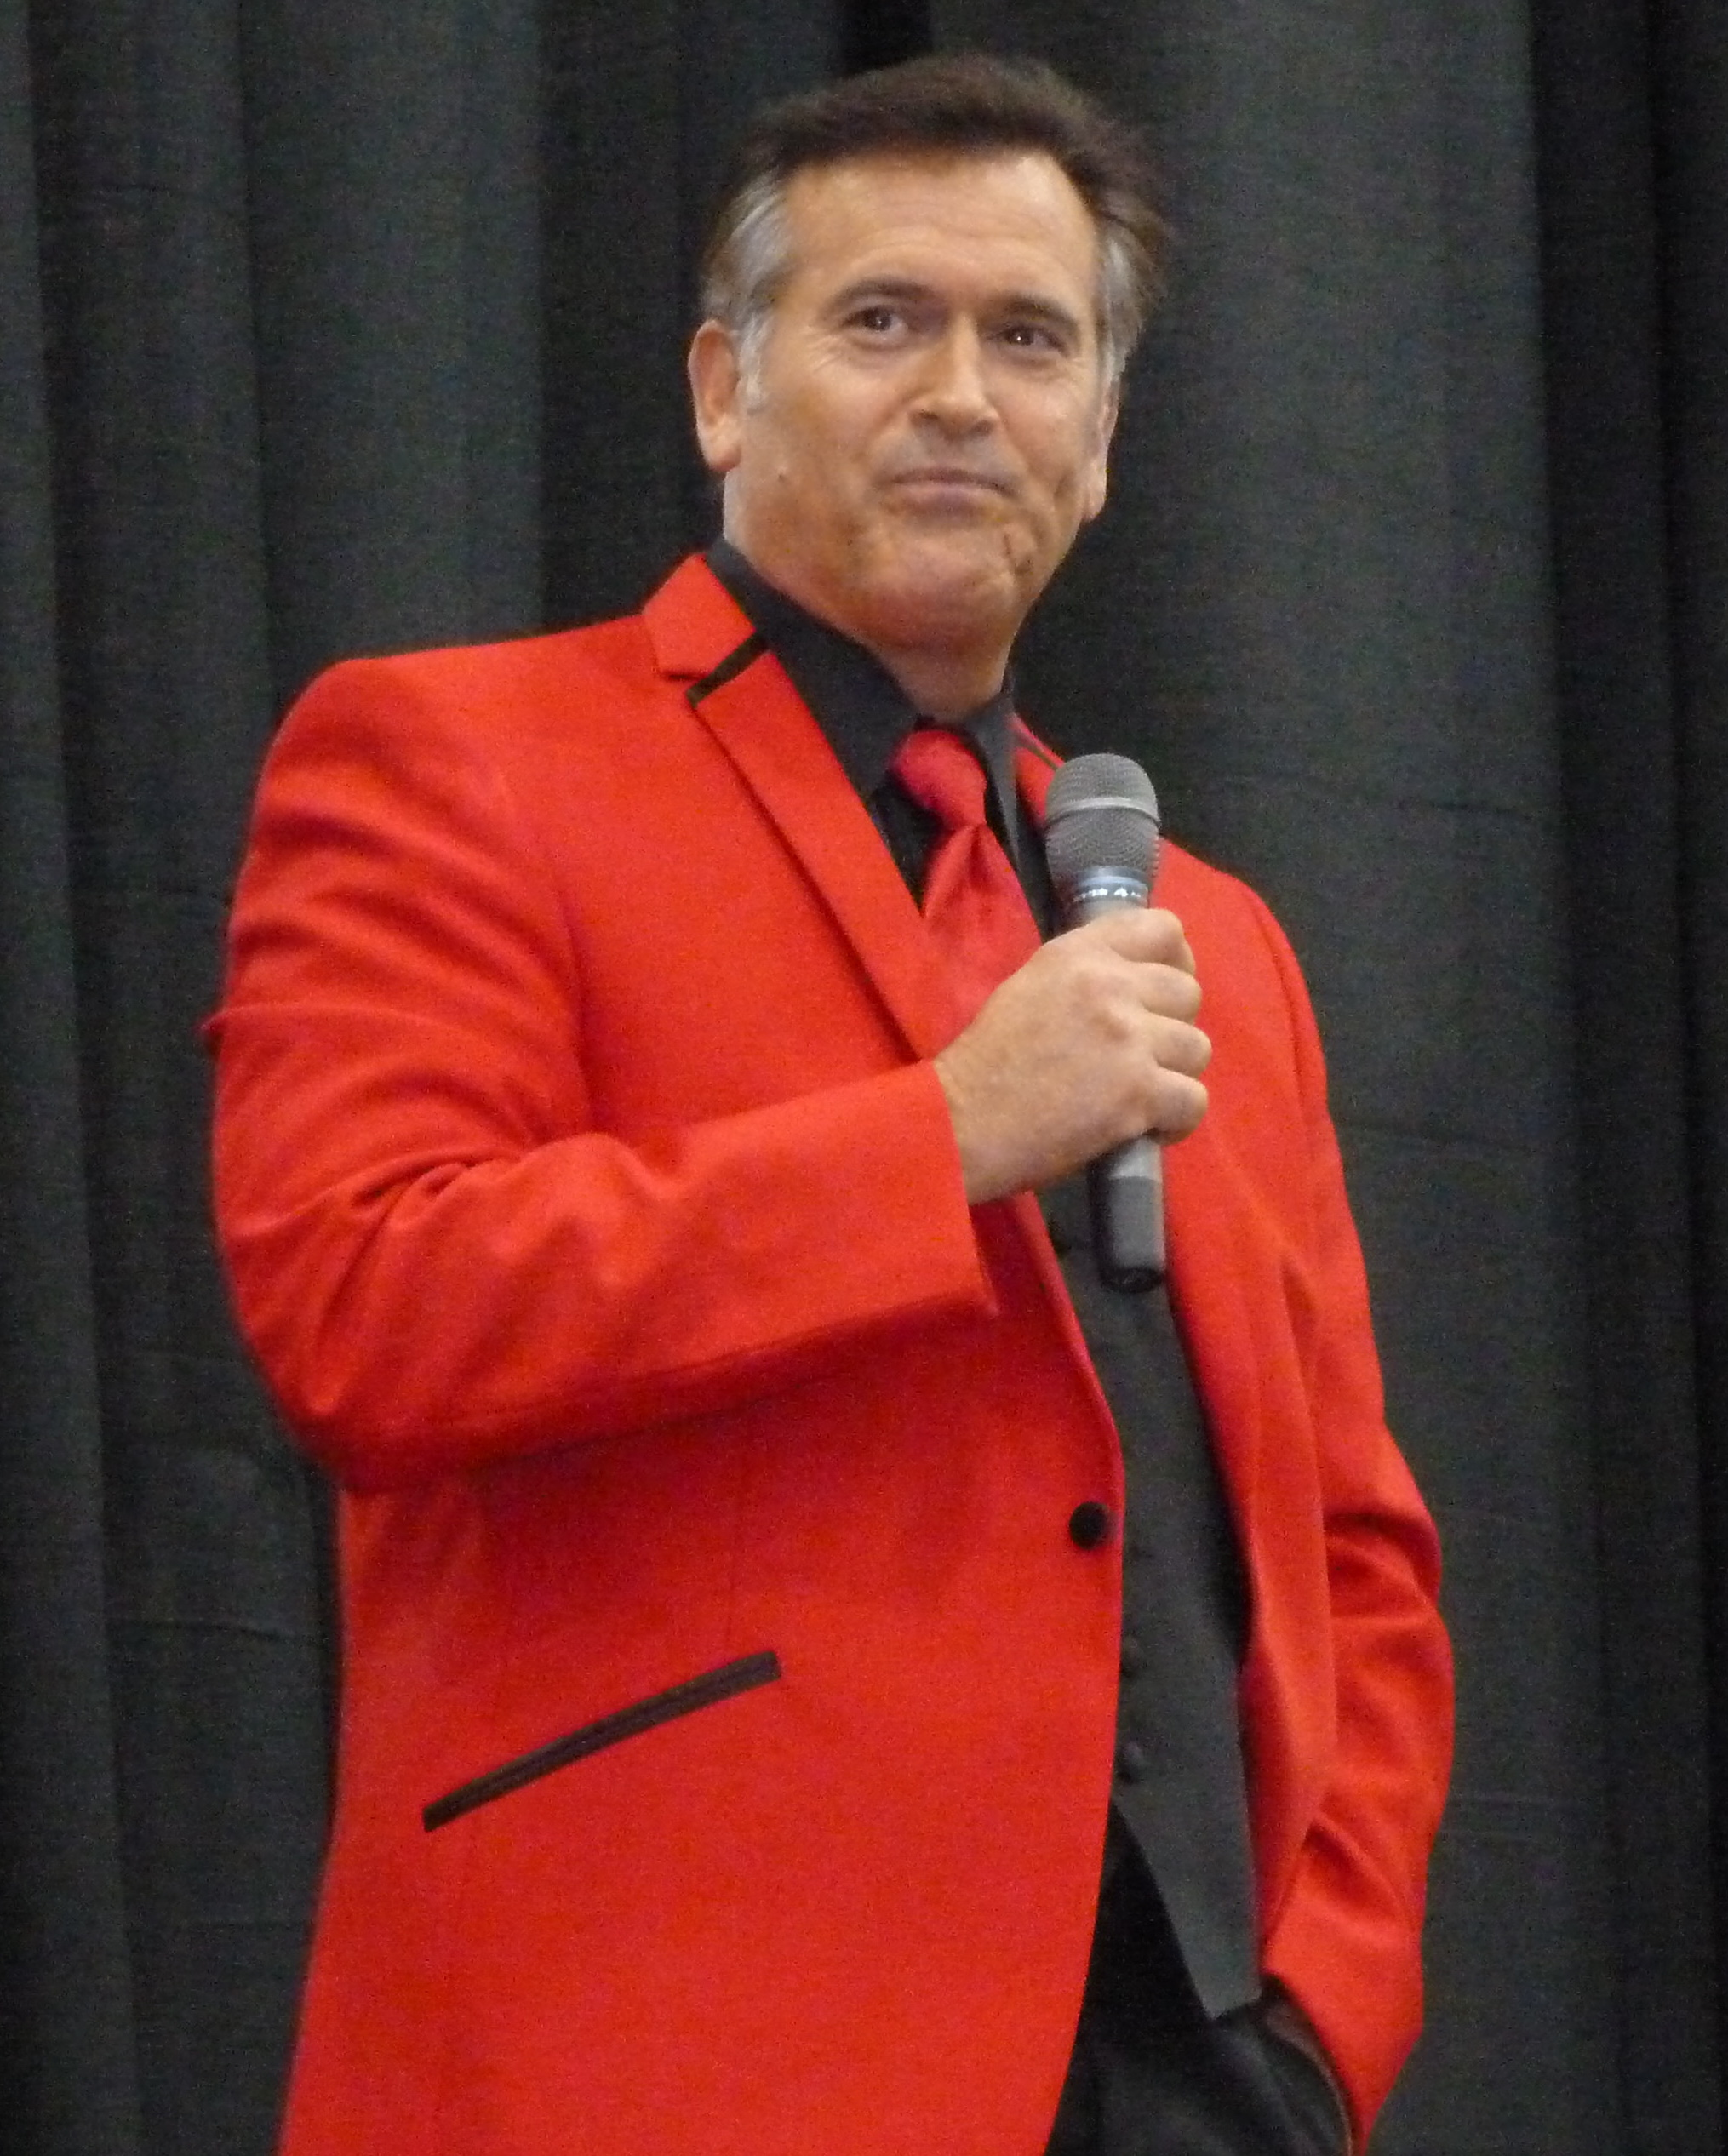 By Tony Shek (Bruce Campbell) [CC BY-SA 2.0 (http://creativecommons.org/licenses/by-sa/2.0)], via Wikimedia Commons